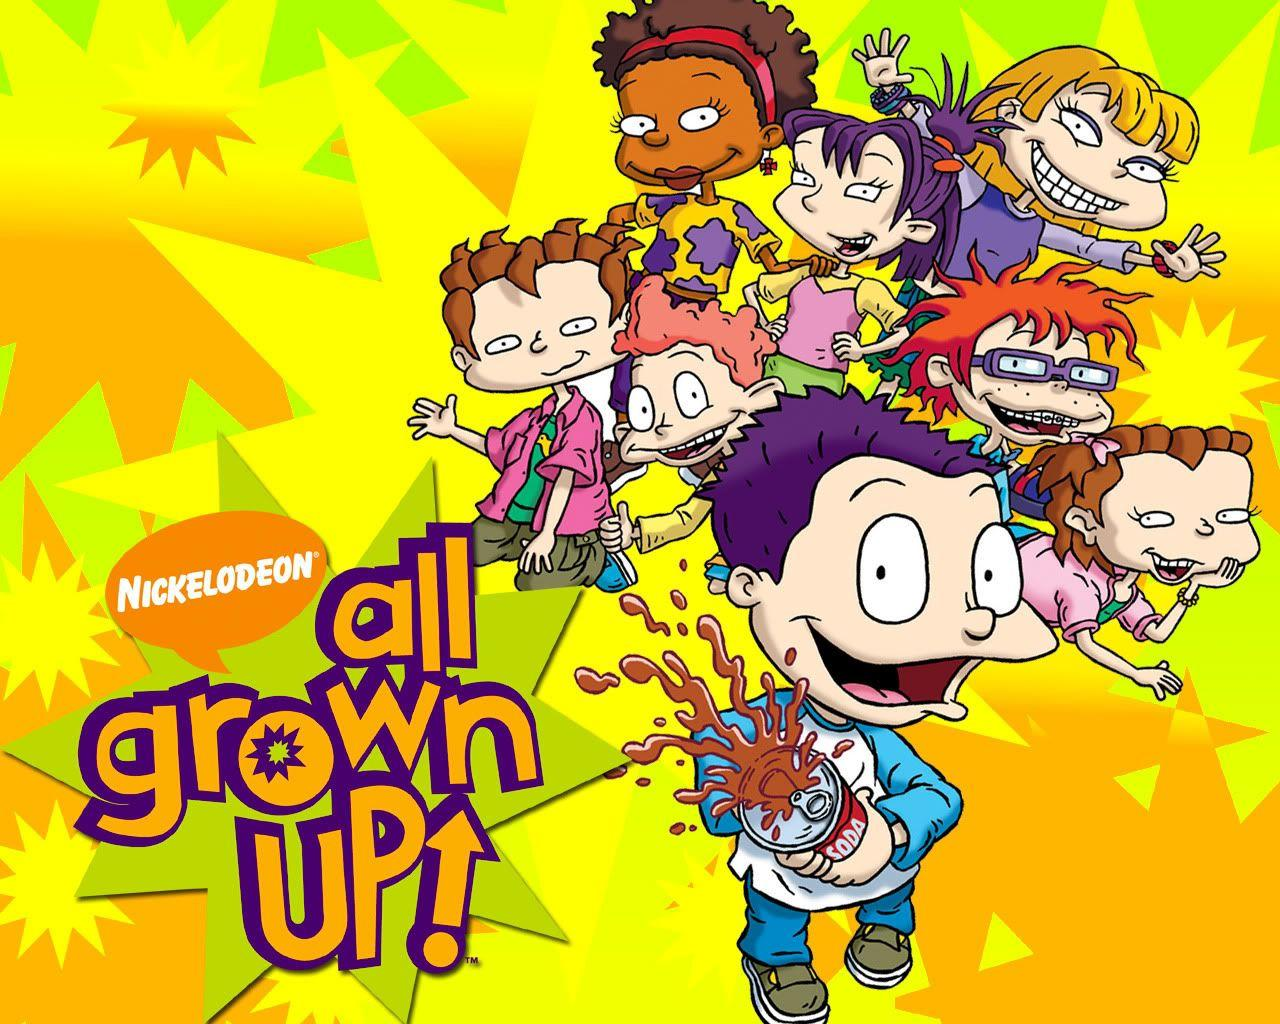 More Beautiful Nickelodeon Wallpapers